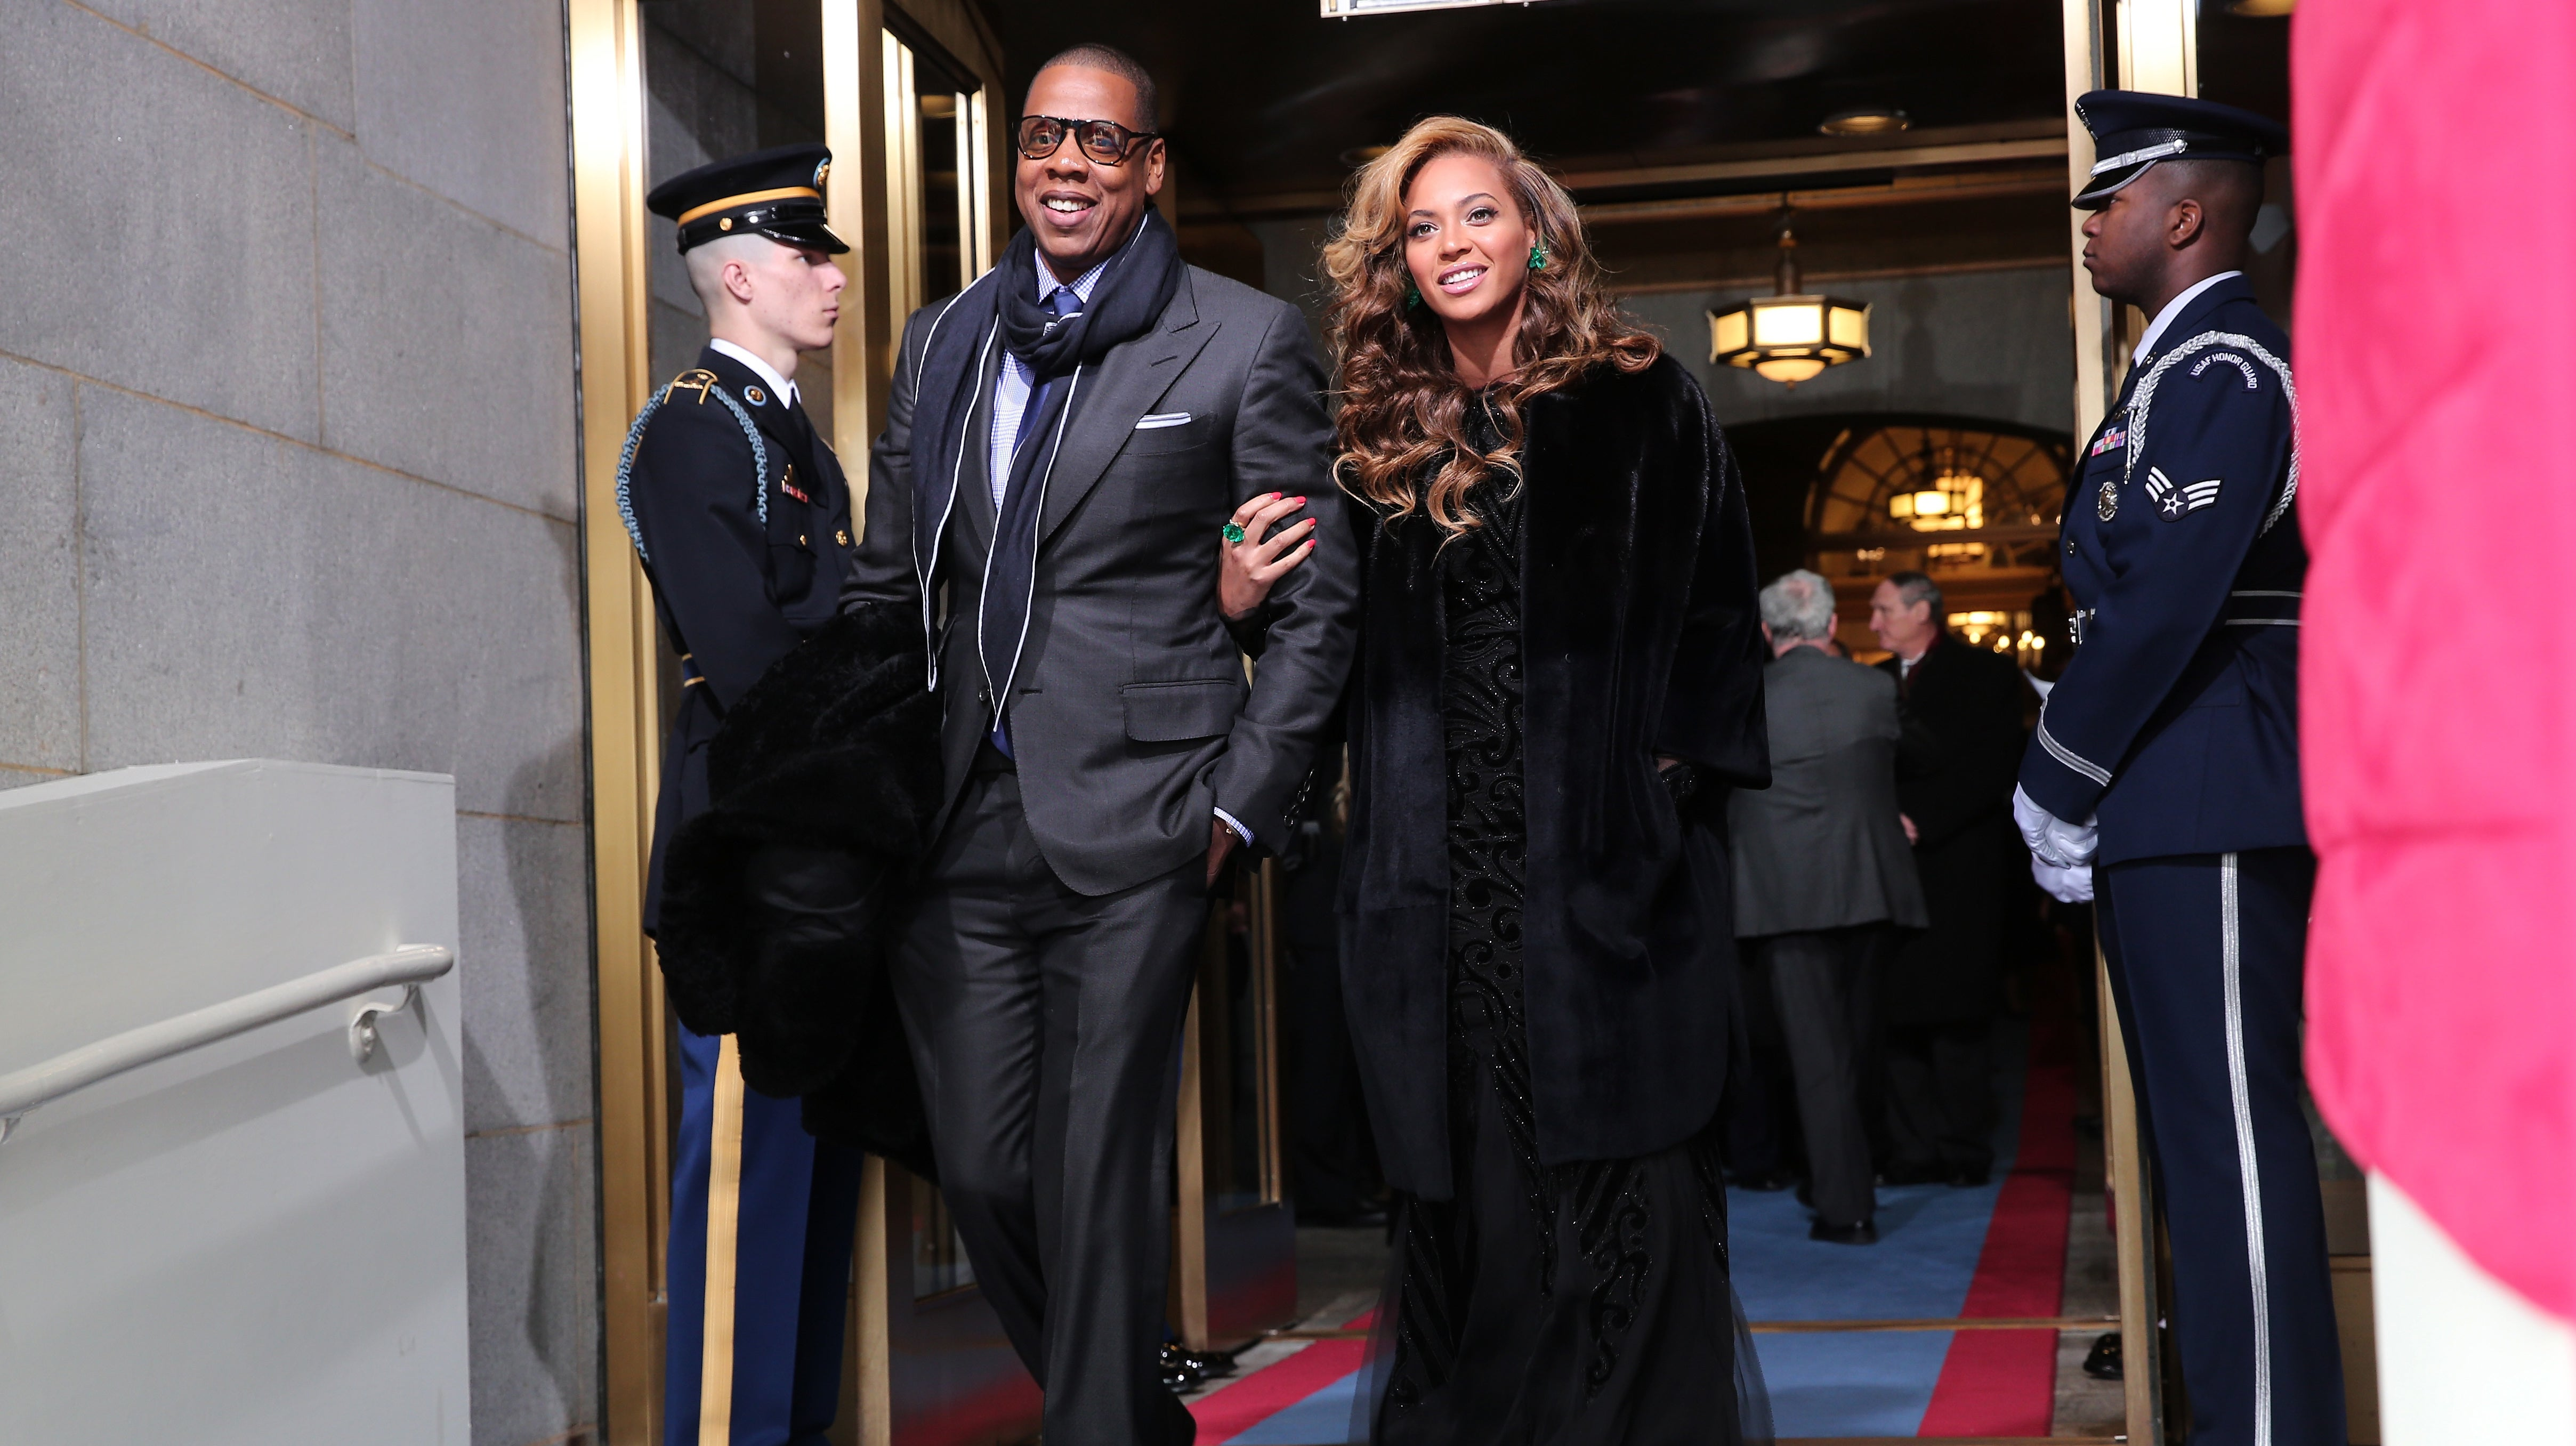 Now You Can Take A Jay-Z AndBeyoncéTour At The Louvre